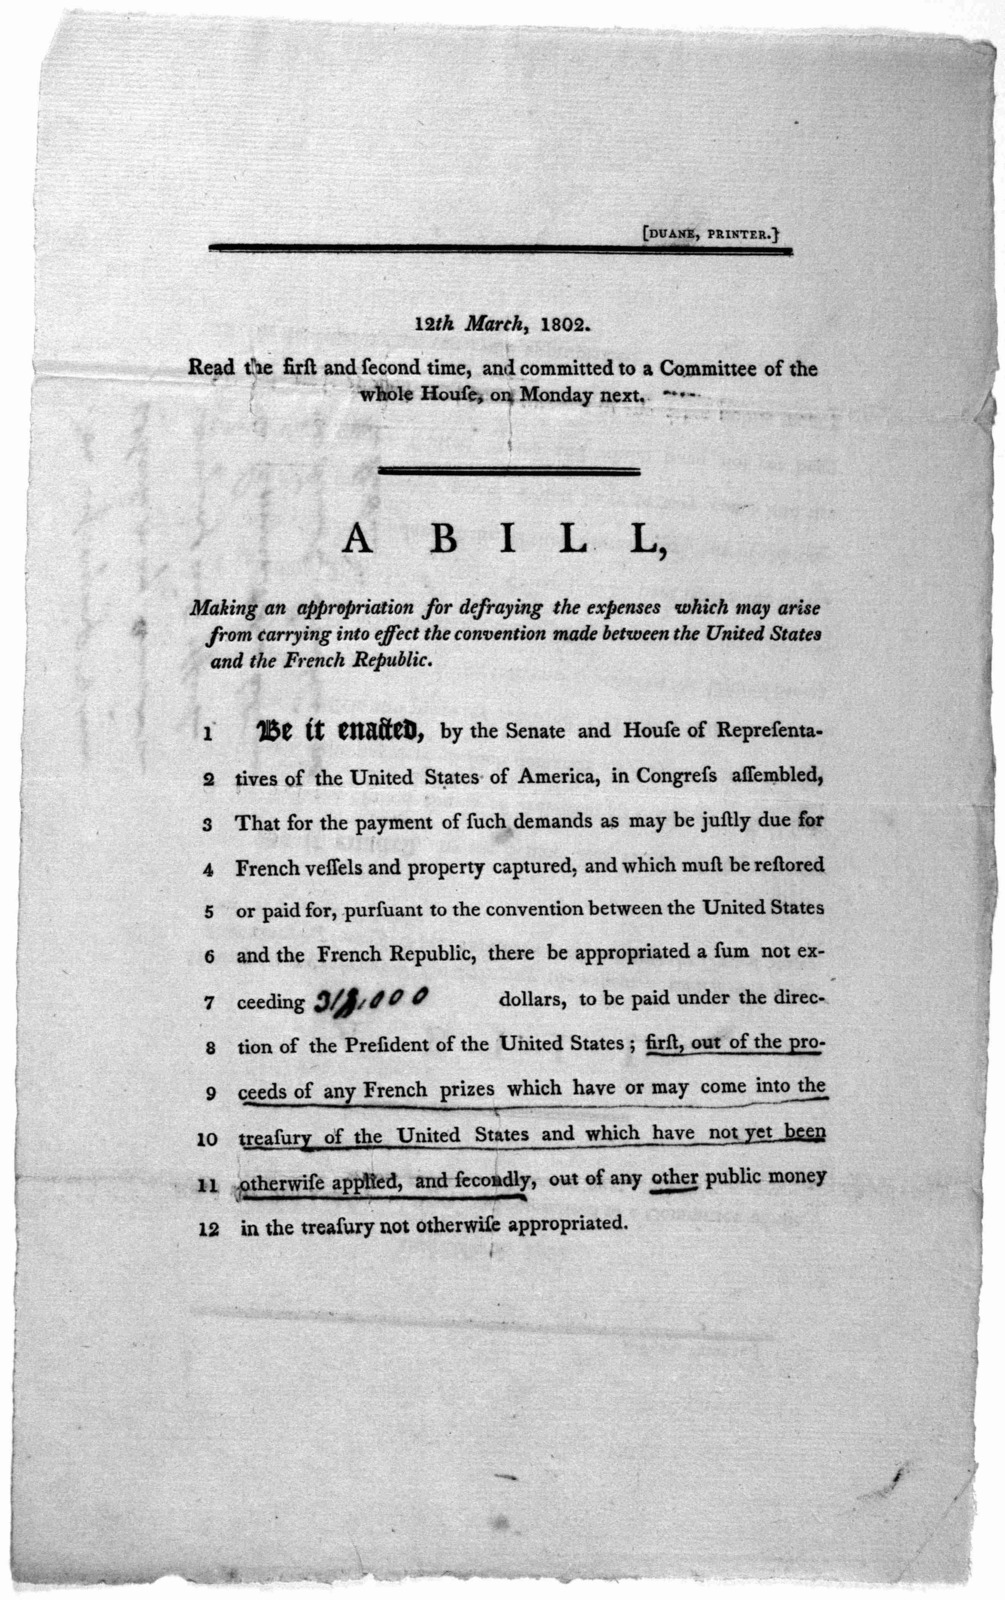 12th March, 1802. Read the first and second time, and committed to a Committee of the whole House, on Monday next. A bill, making an appropriation for defraying the expenses which may arise from carrying into effect the convention made between t